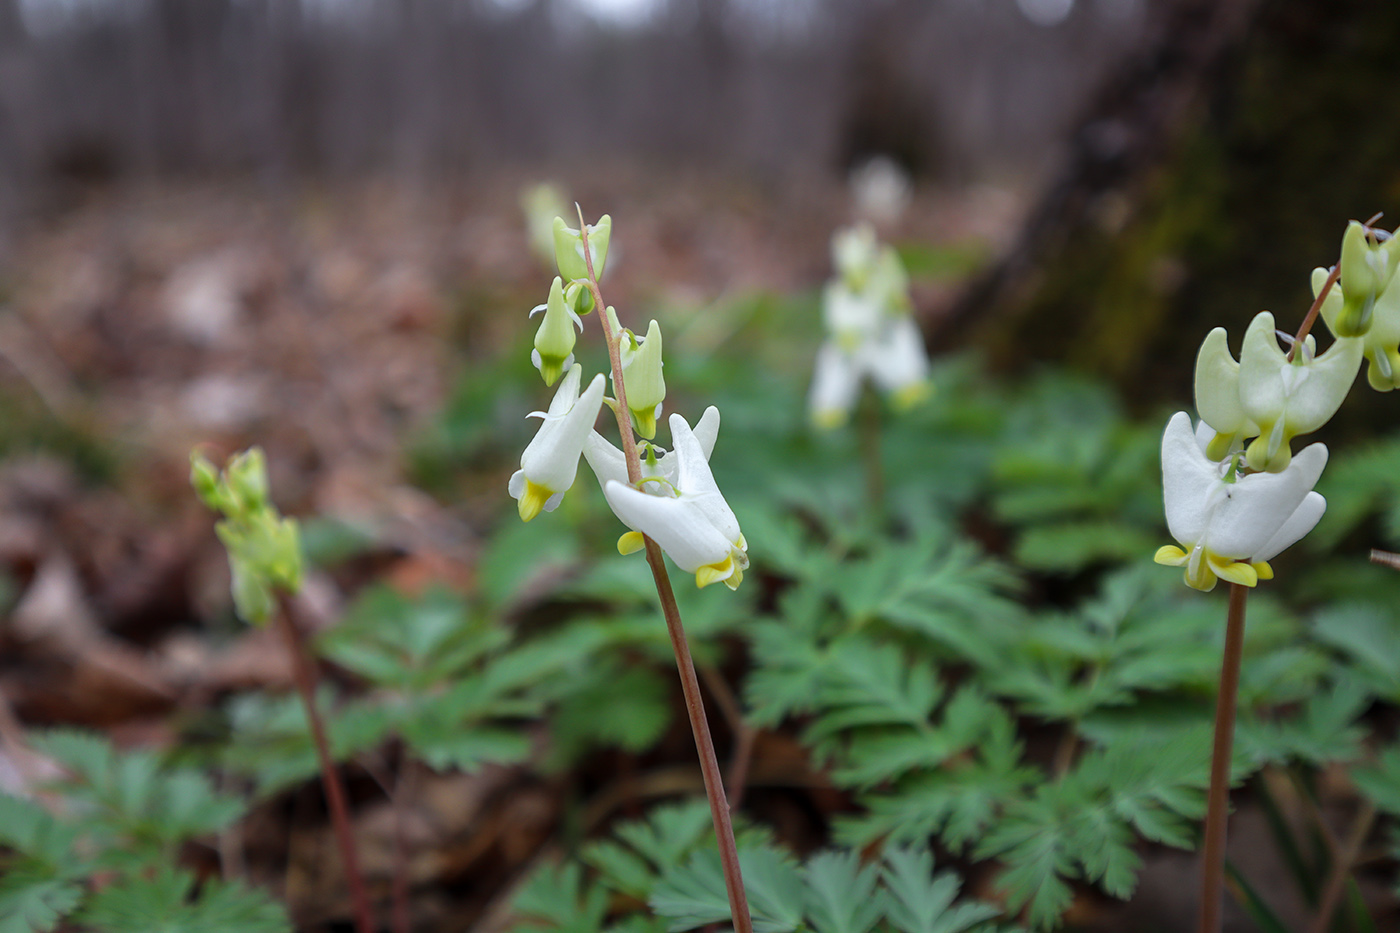 Duchman's breeches is a common spring wildflower found in the Acadian Forest Region